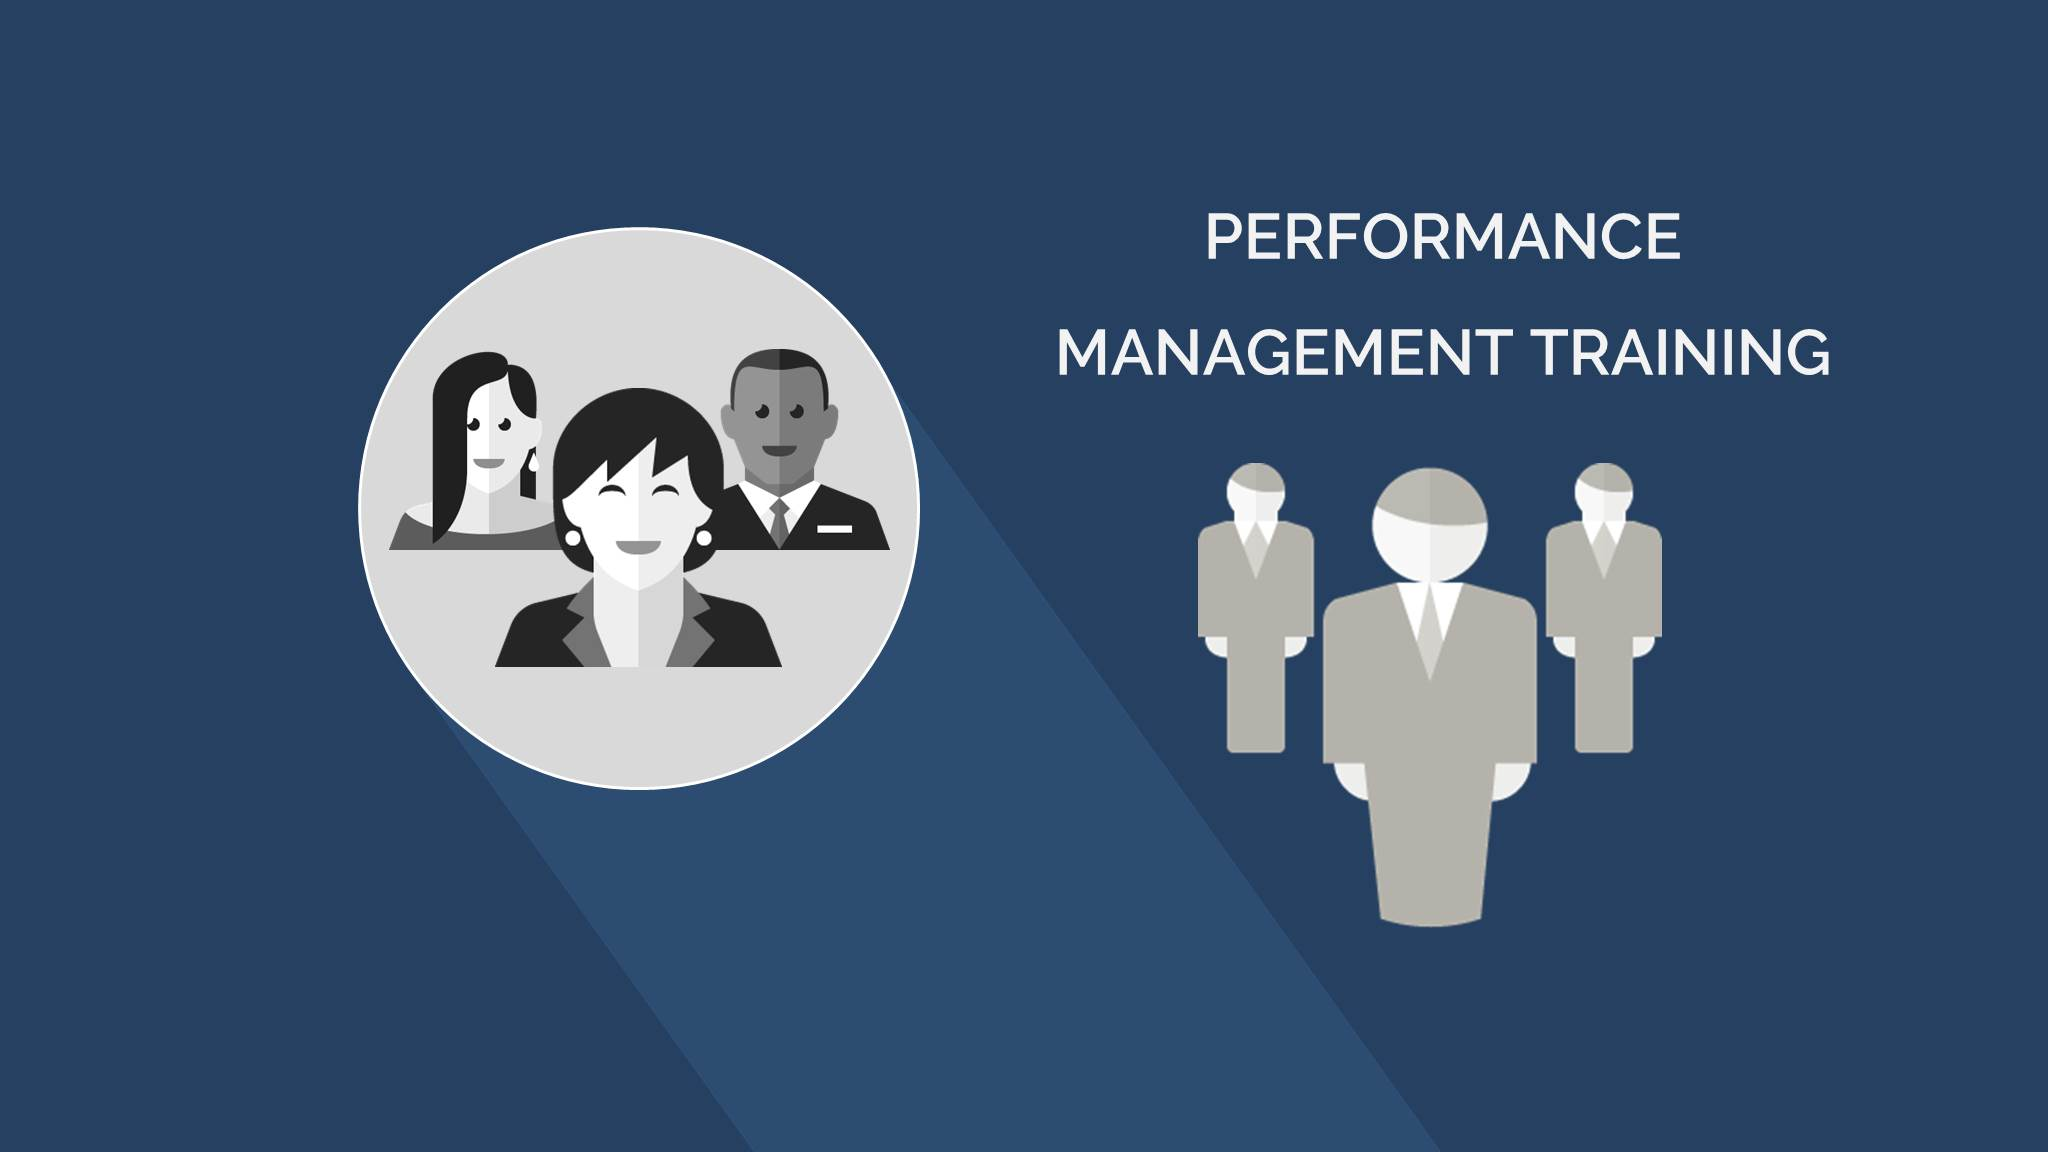 Performance Management Training  Lean Consulting. Phoenix University Online Degrees. Equipment Insurance Coverage. Bulk Copy Paper Suppliers Cable Packages Nyc. Welding Companies In Nyc Satellite Tv Service. Credit Union Motorcycle Loan Ssl On Iphone. How To Obtain Articles Of Incorporation. Brooklyn College Learning Center. Cardboard Tube Mailers Washington Dc Plumbers